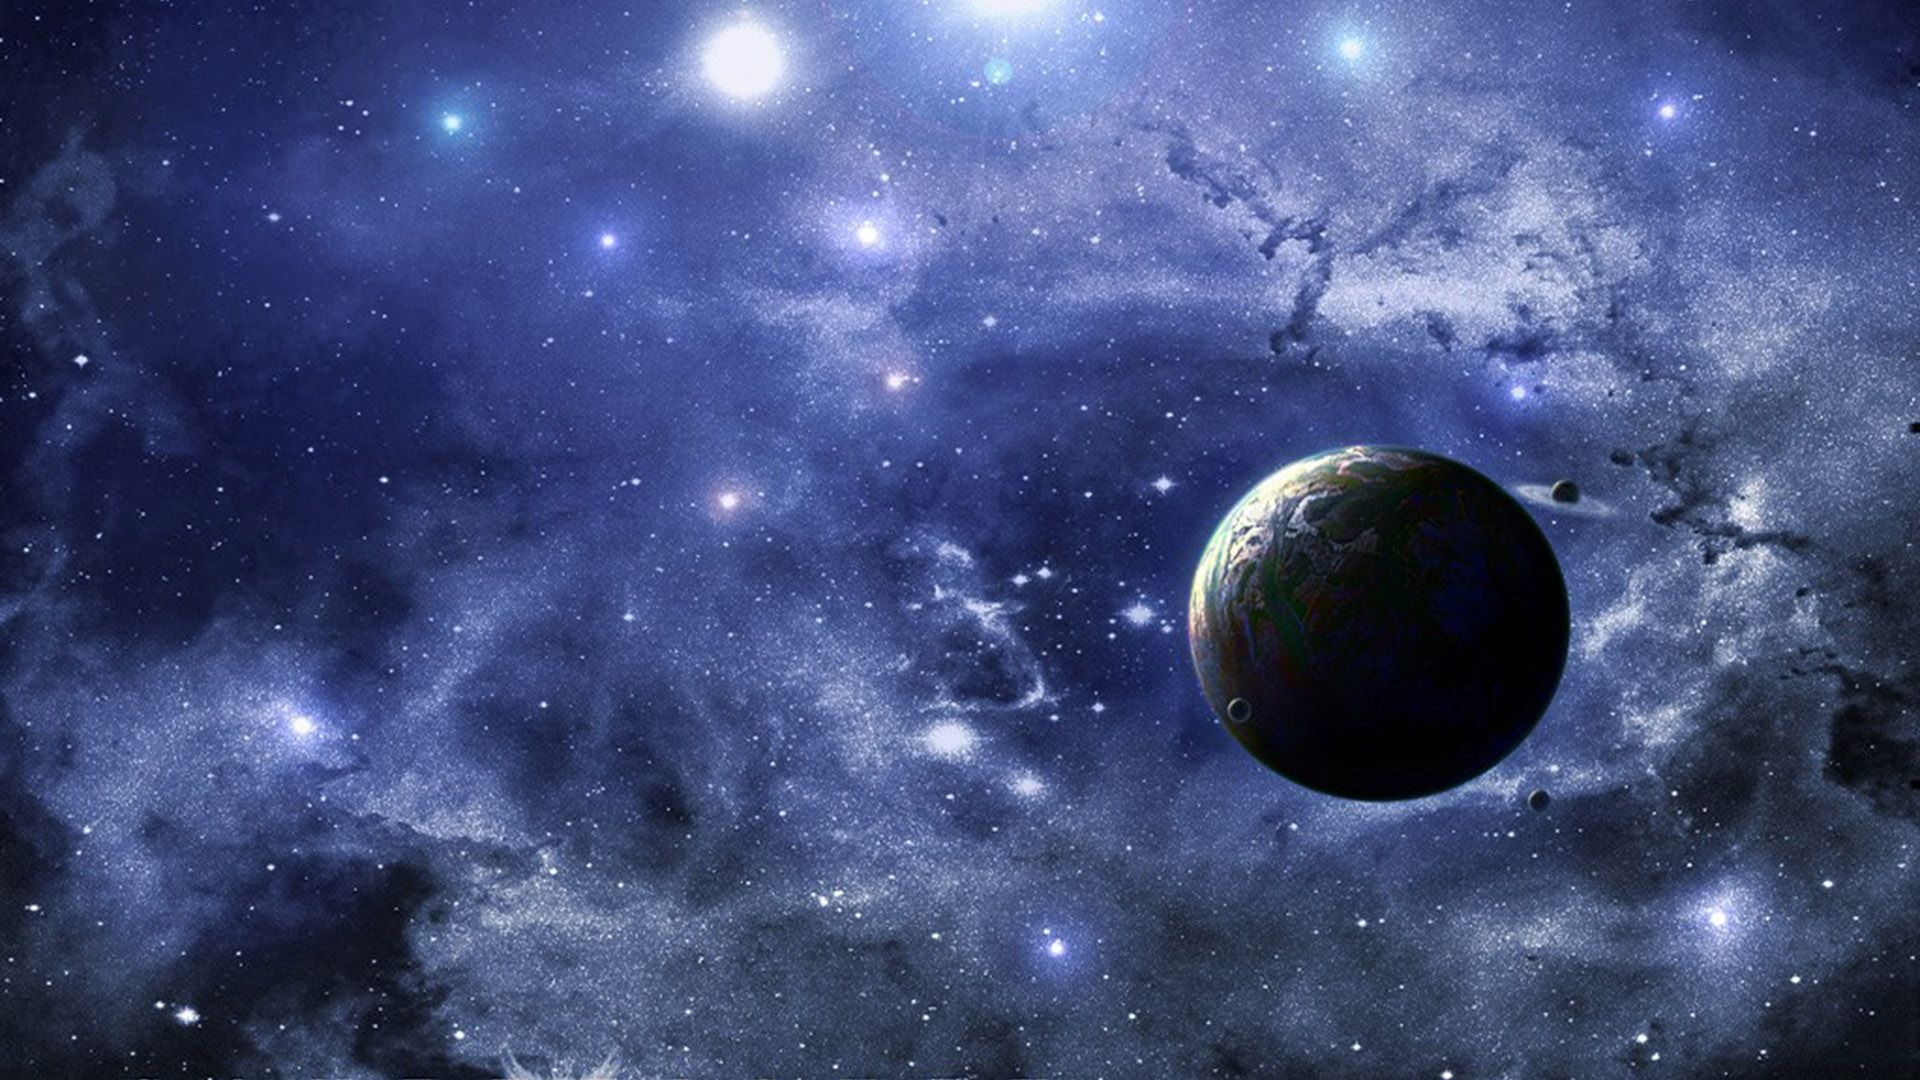 Outer Space full screen hd wallpaper